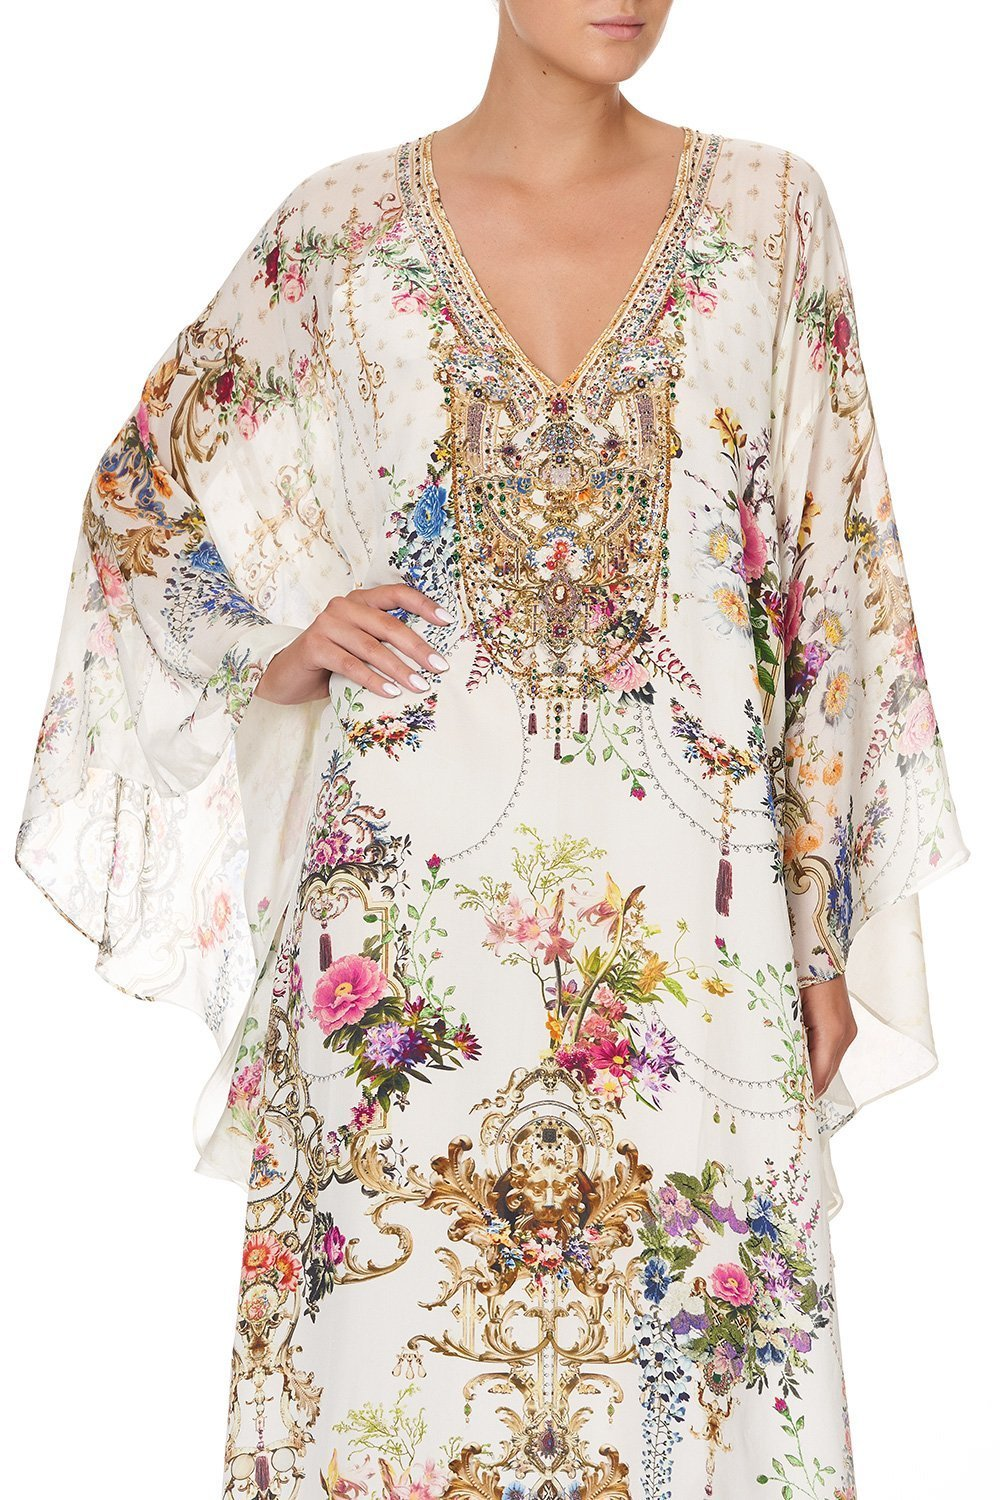 CAMILLA_00011115_BY_THE_MEADOW_LONG_RAGLAN_SLEEVE_FLARED_KAFTAN_7_1024x1024@2x